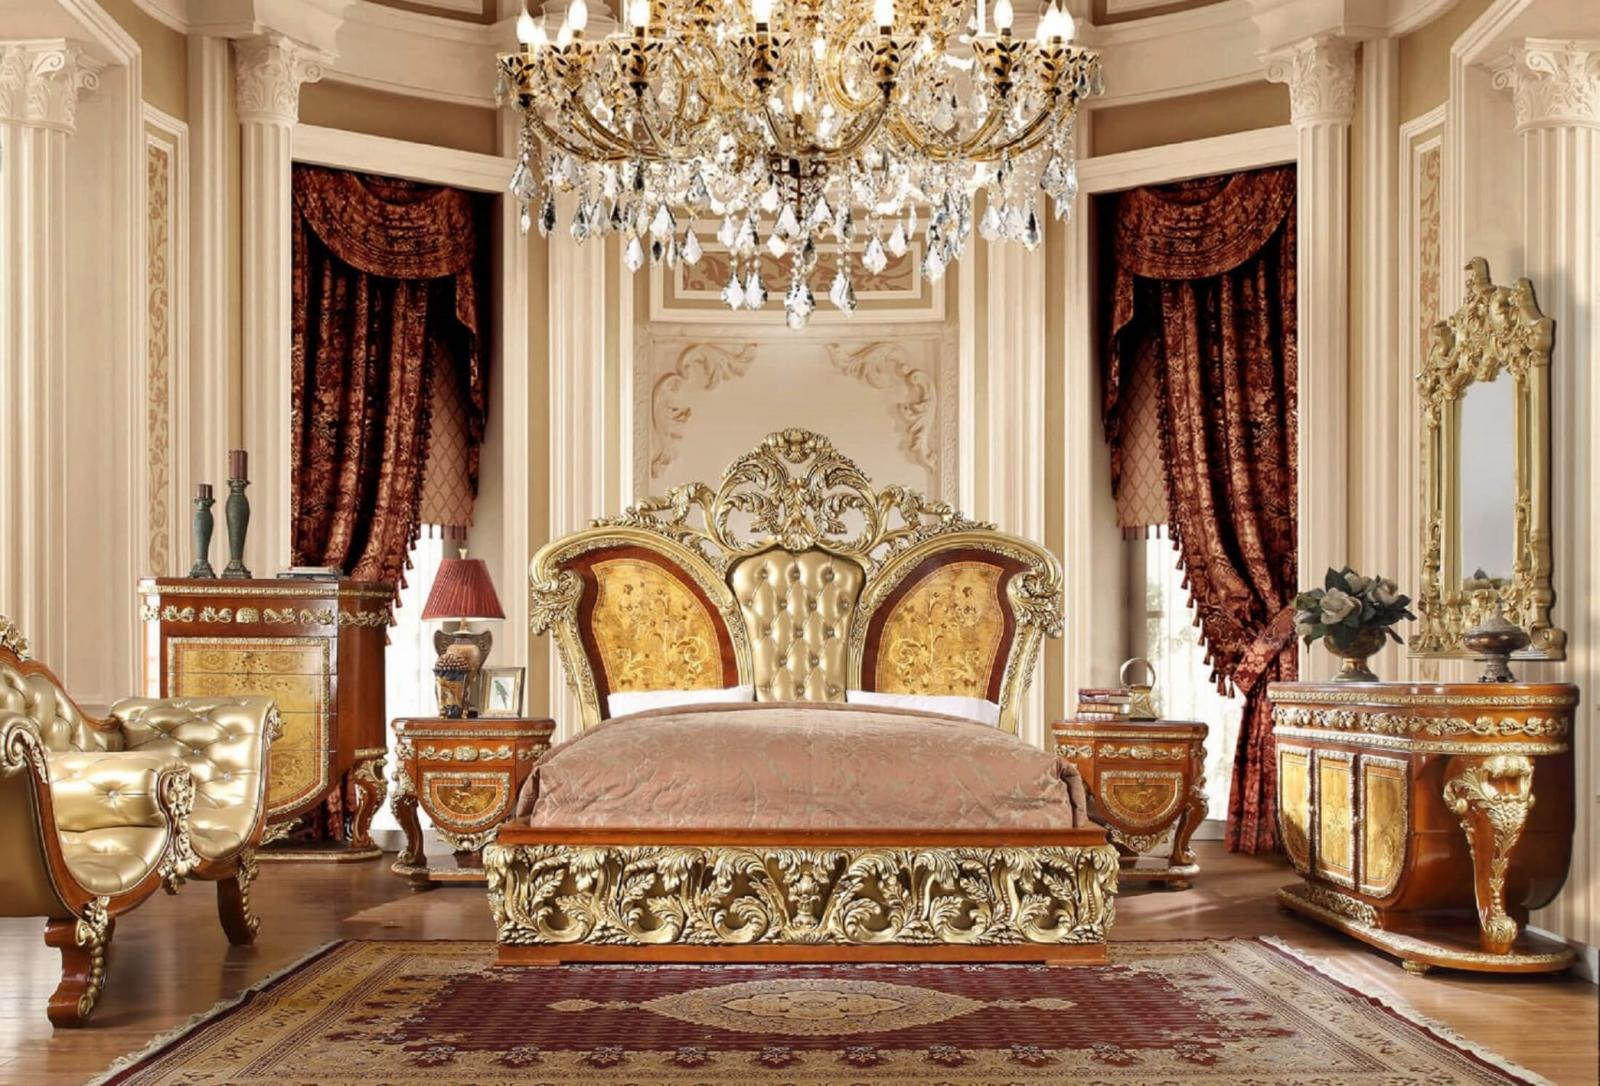 Luxury KING Bedroom Set 6 Psc Gold Curved Wood HD-8024 Homey Design Classic